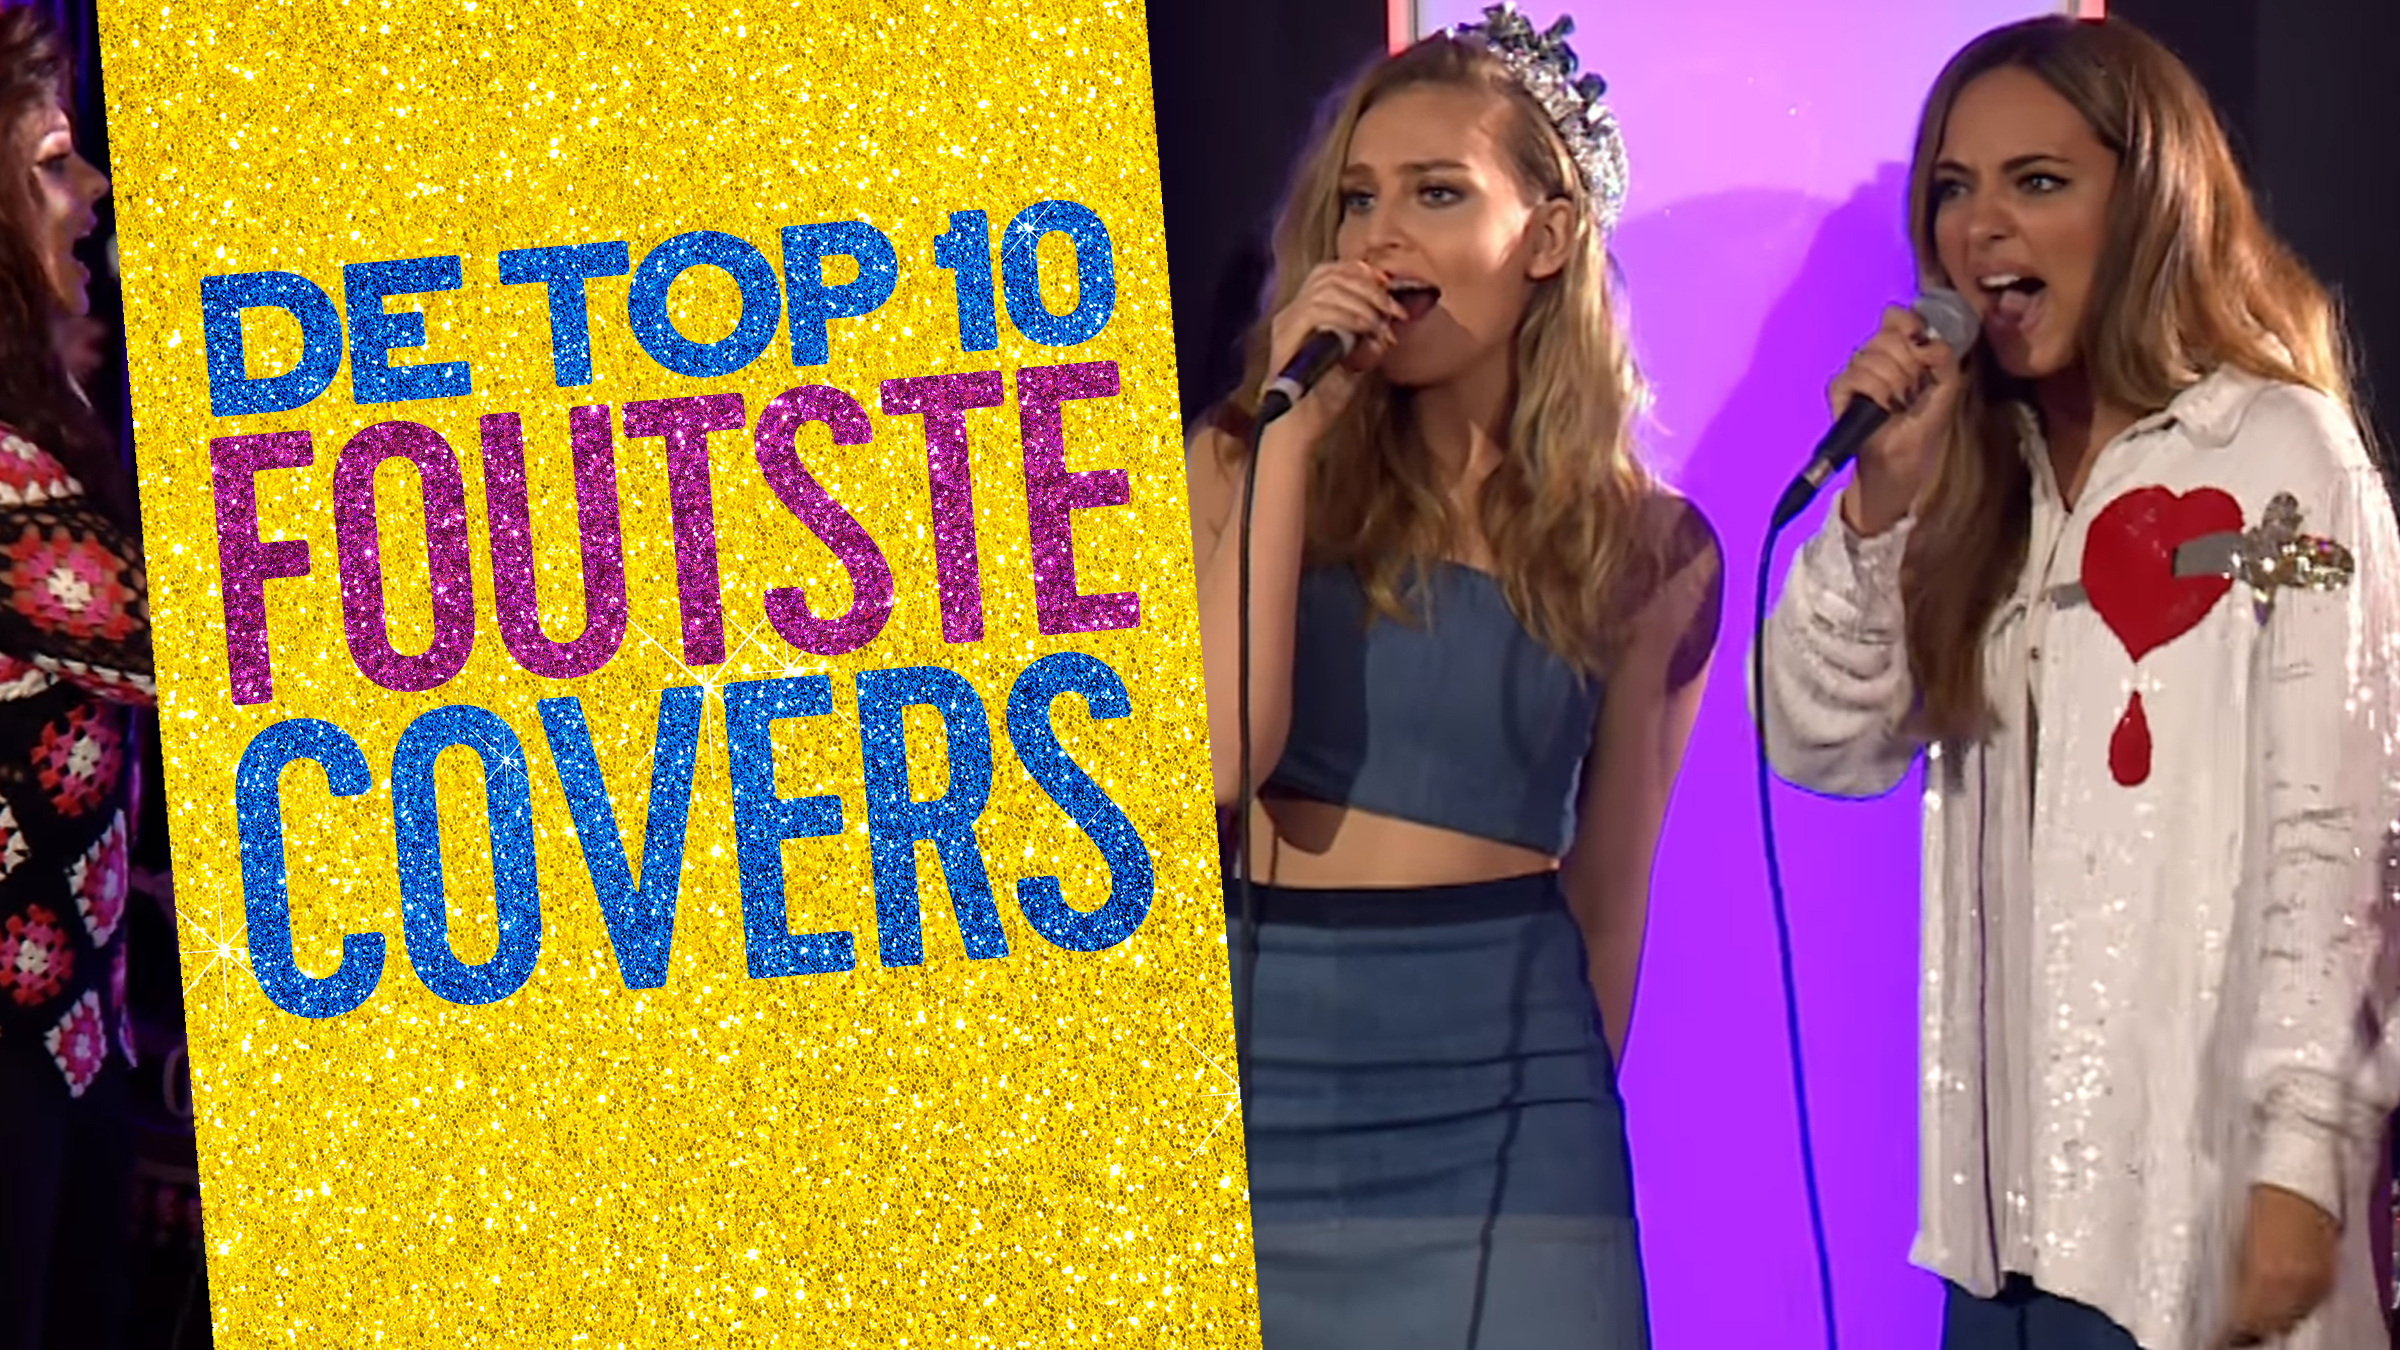 Qmusic top10foutcover teaser